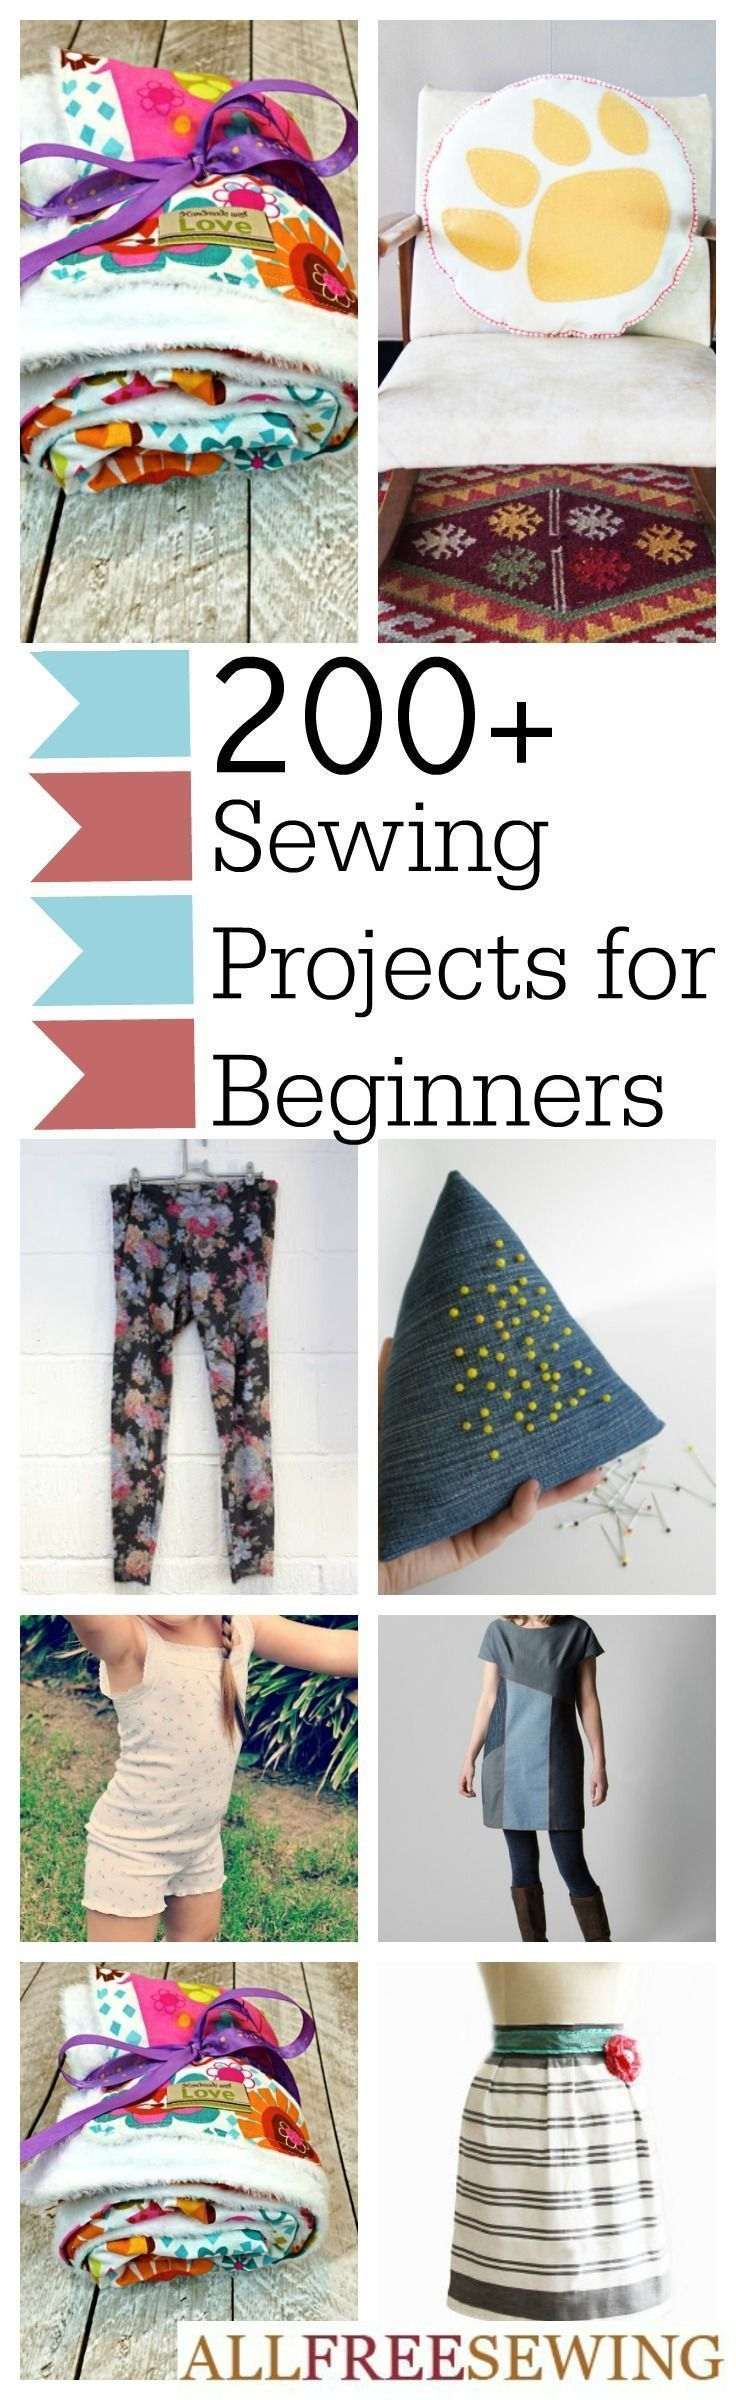 Transform Your Life With Quick Sewing Projects That Are Easy To Make From Clothing Patterns Sewn Accessories And Home Decor